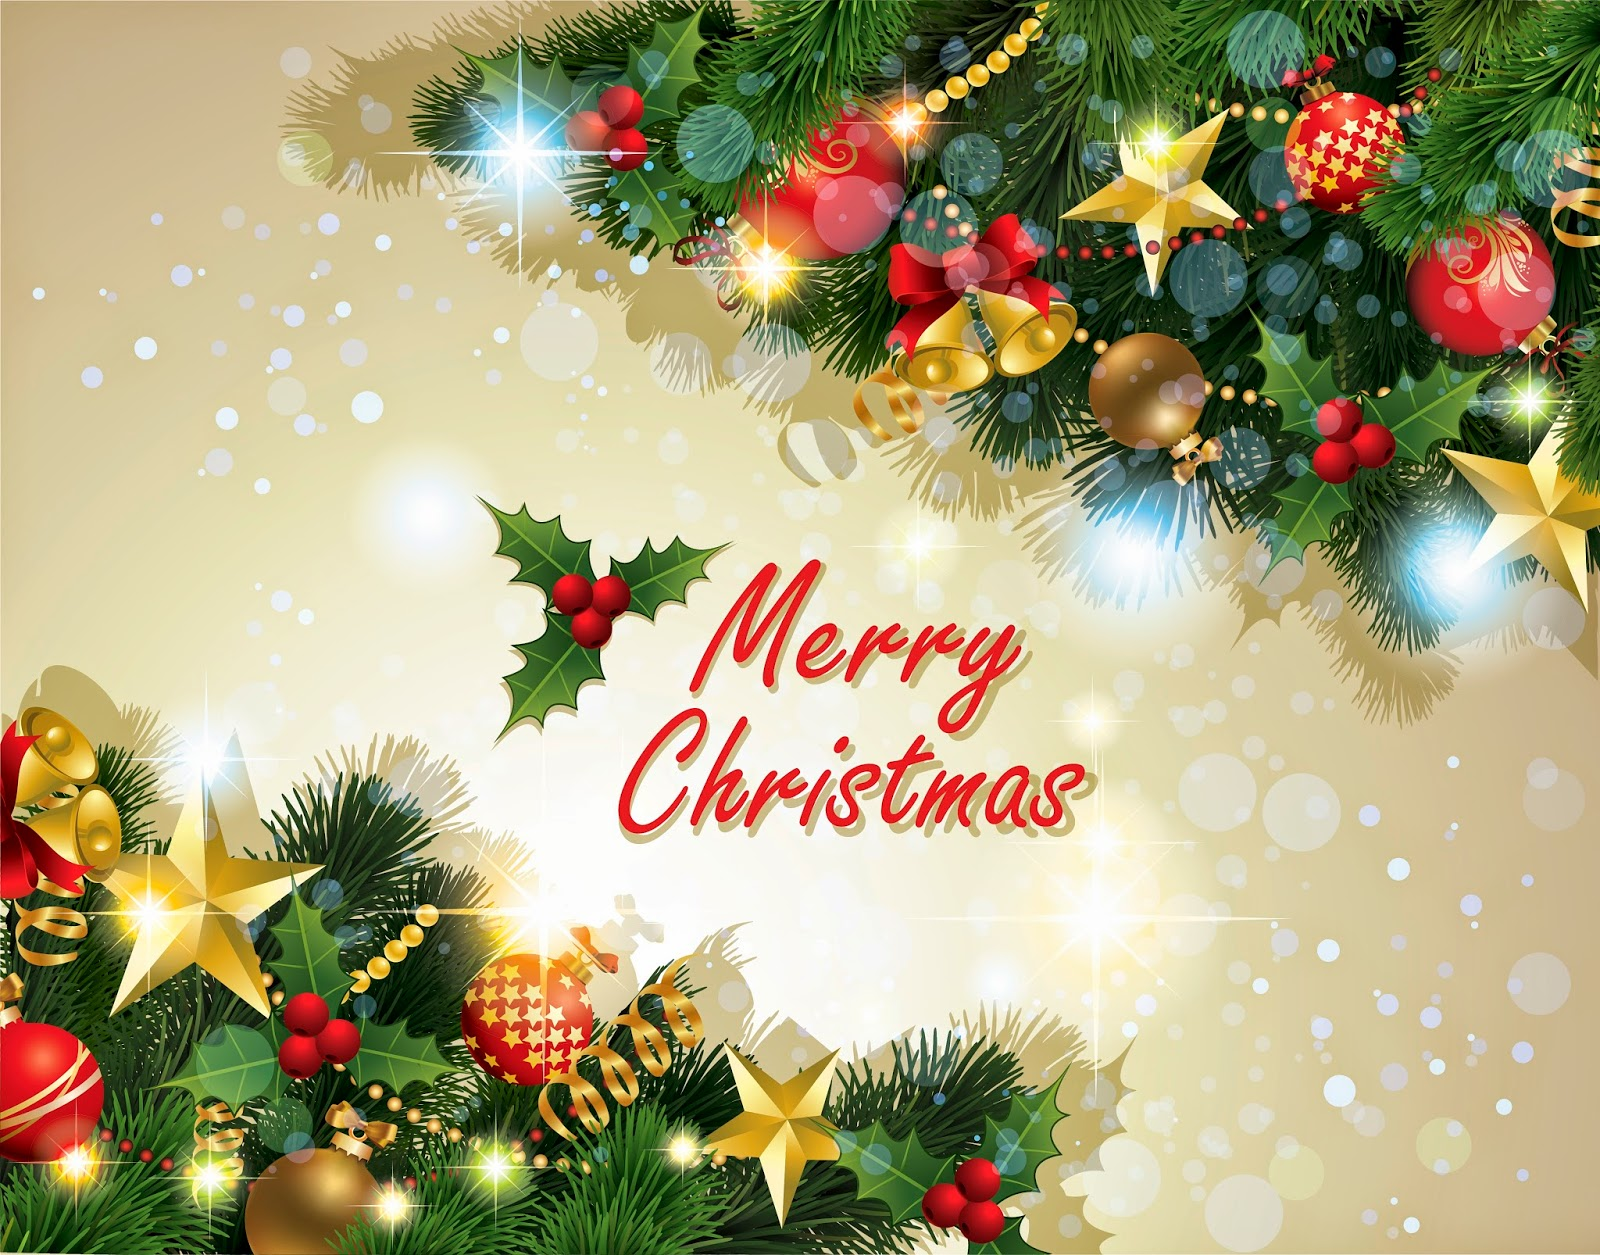 Merry_Christmas_wishes_vector_design_card_template_HD_image_free_download_5001x3921.jpg